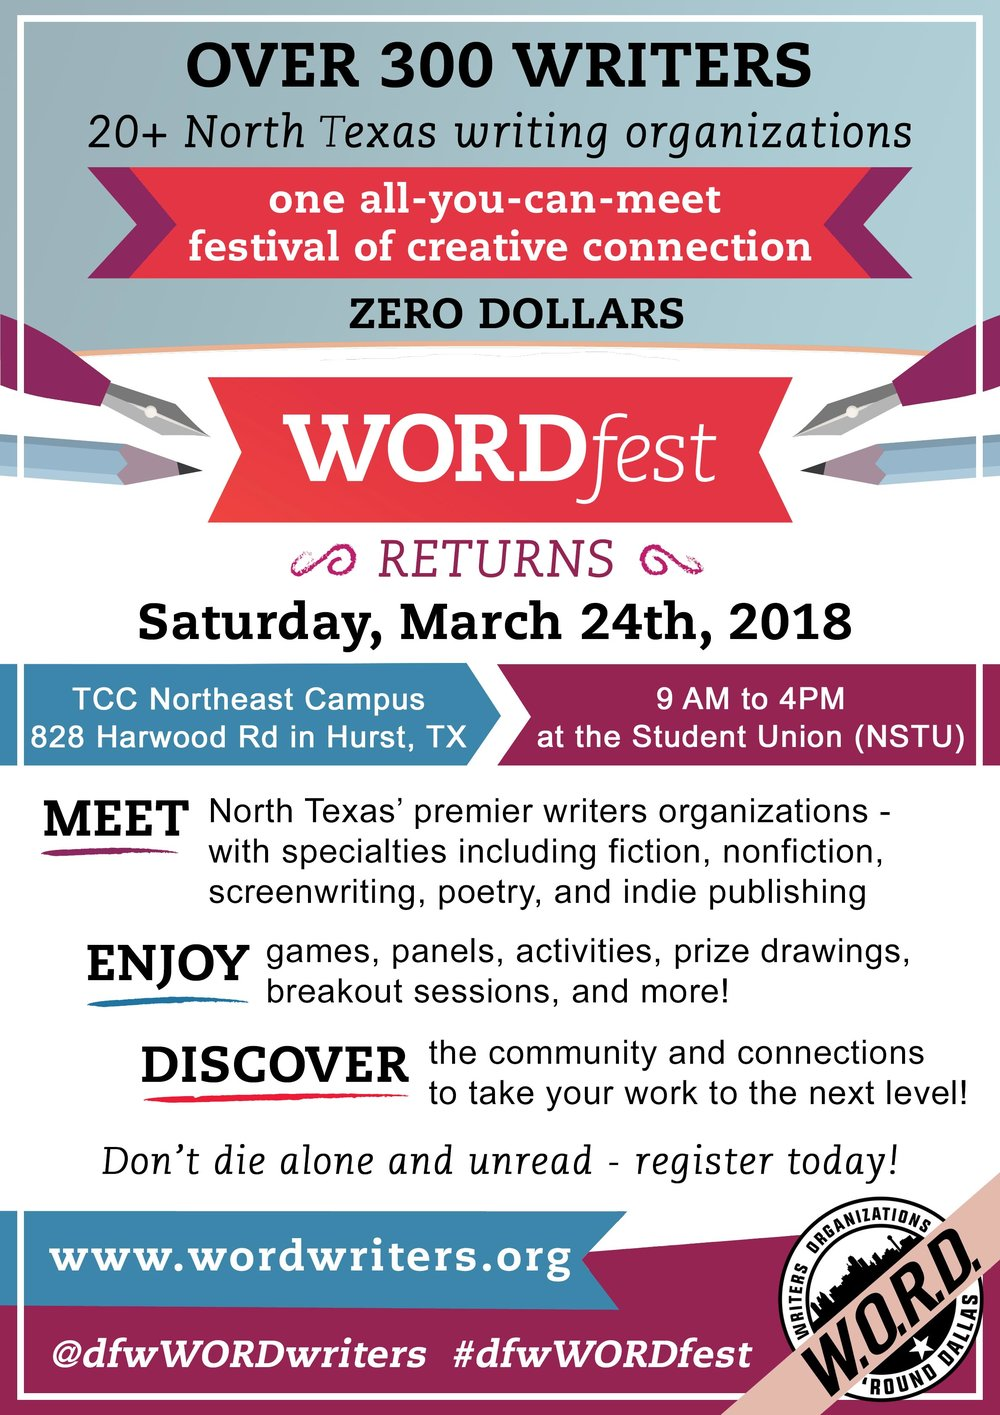 WORDfest_Flyer_2018.jpg